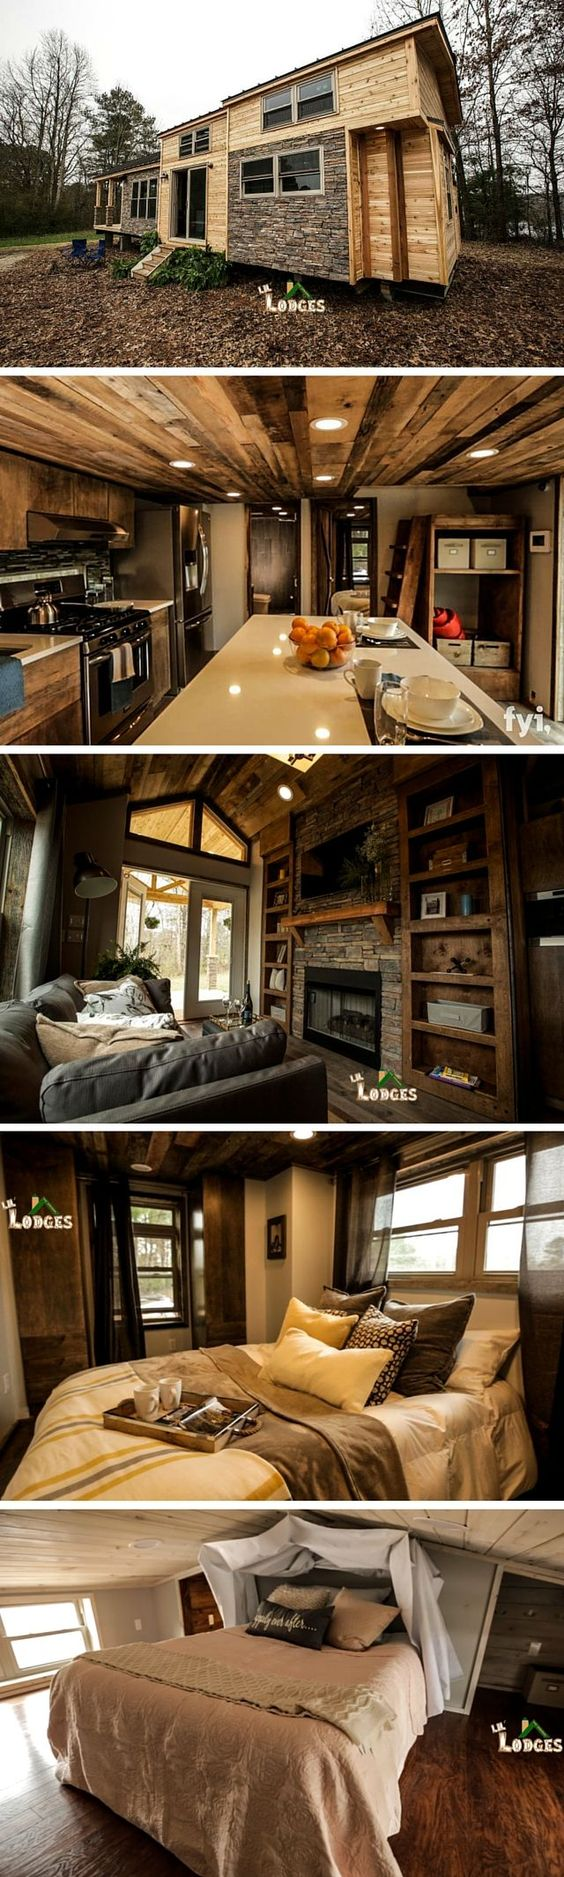 A Tiny House Retreat in Cobleskill, NY. Built by Lil Lodge and featured on Tiny House Nation. : tinyhousetown